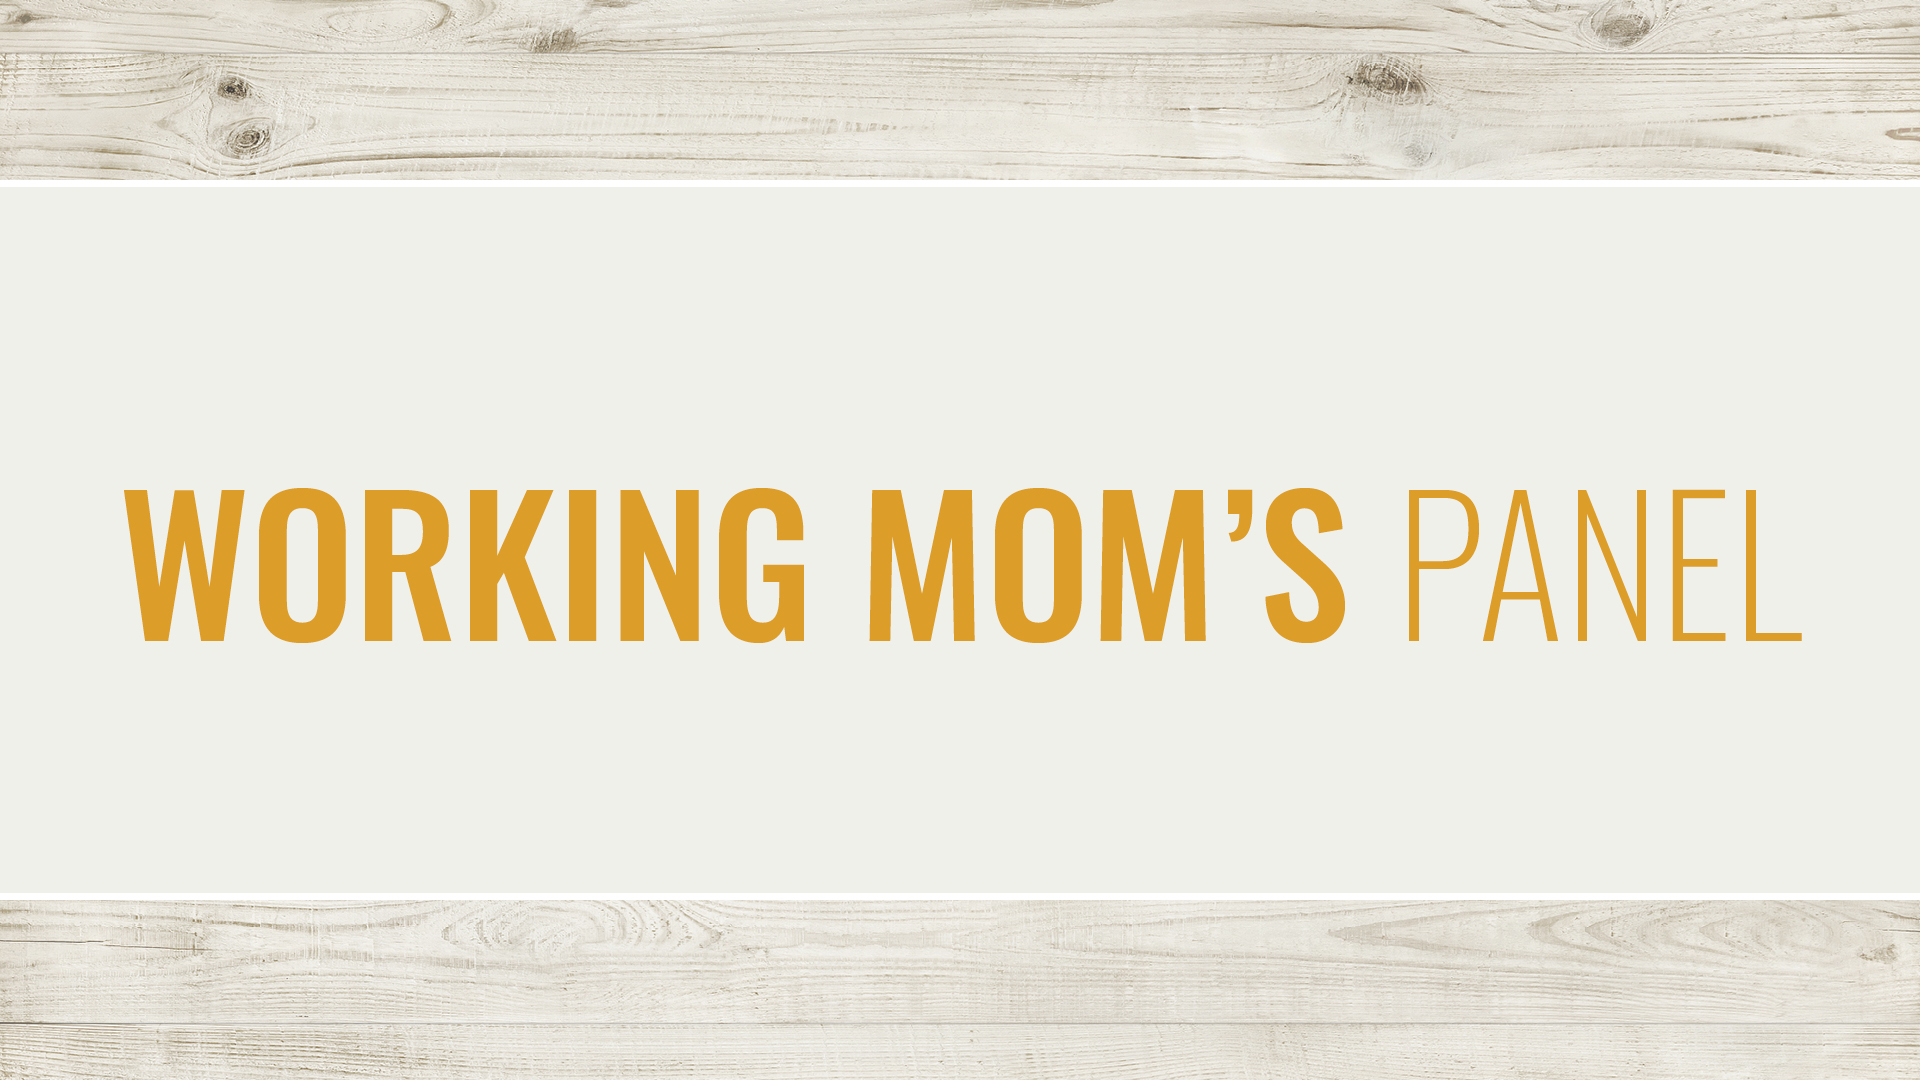 Working Mom's Panel: Week 1